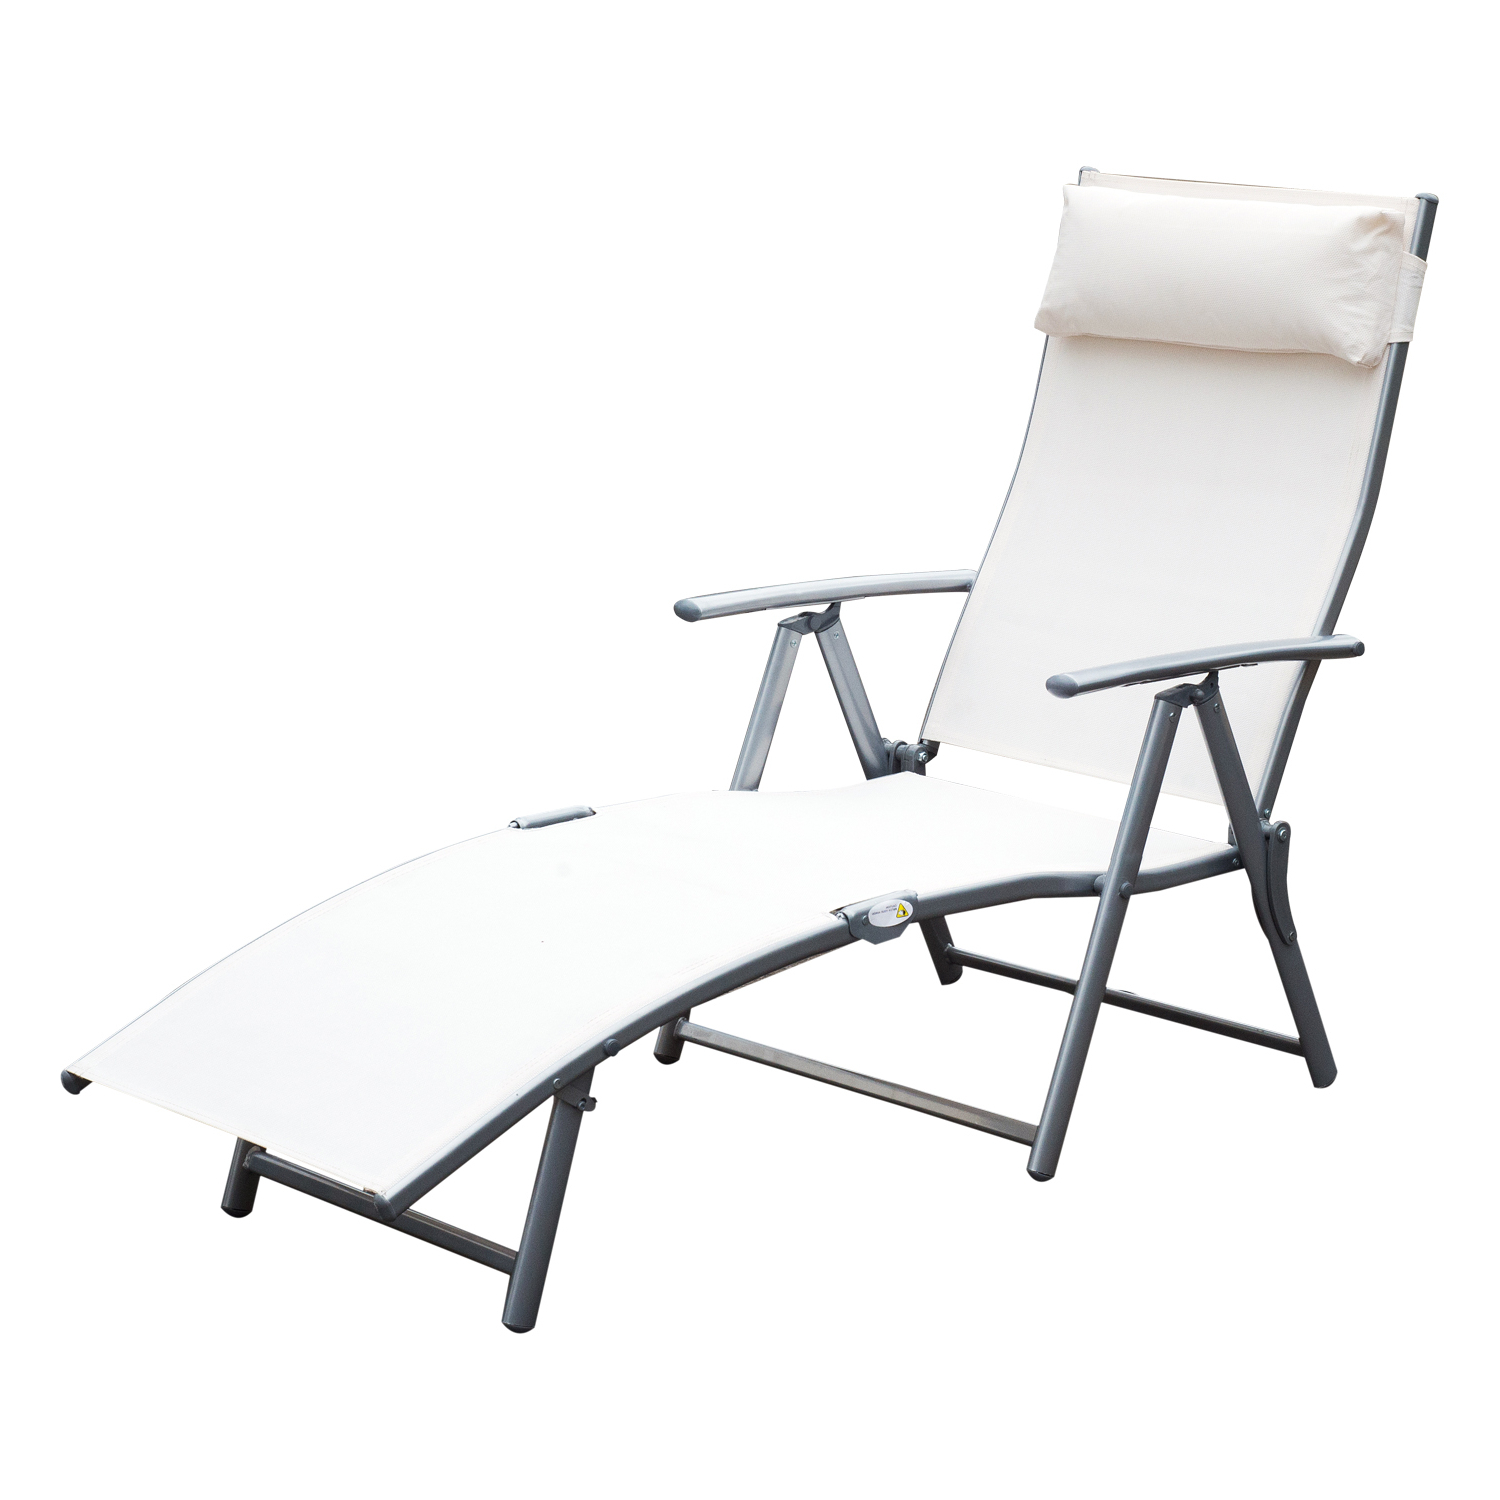 Current Black Sling Fabric Adjustable Chaise Lounges Throughout Outsunny Sling Fabric Patio Reclining Chaise Lounge Chair Folding 5 Position Adjustable Outdoor Deck With Cushion – Cream White (View 15 of 25)